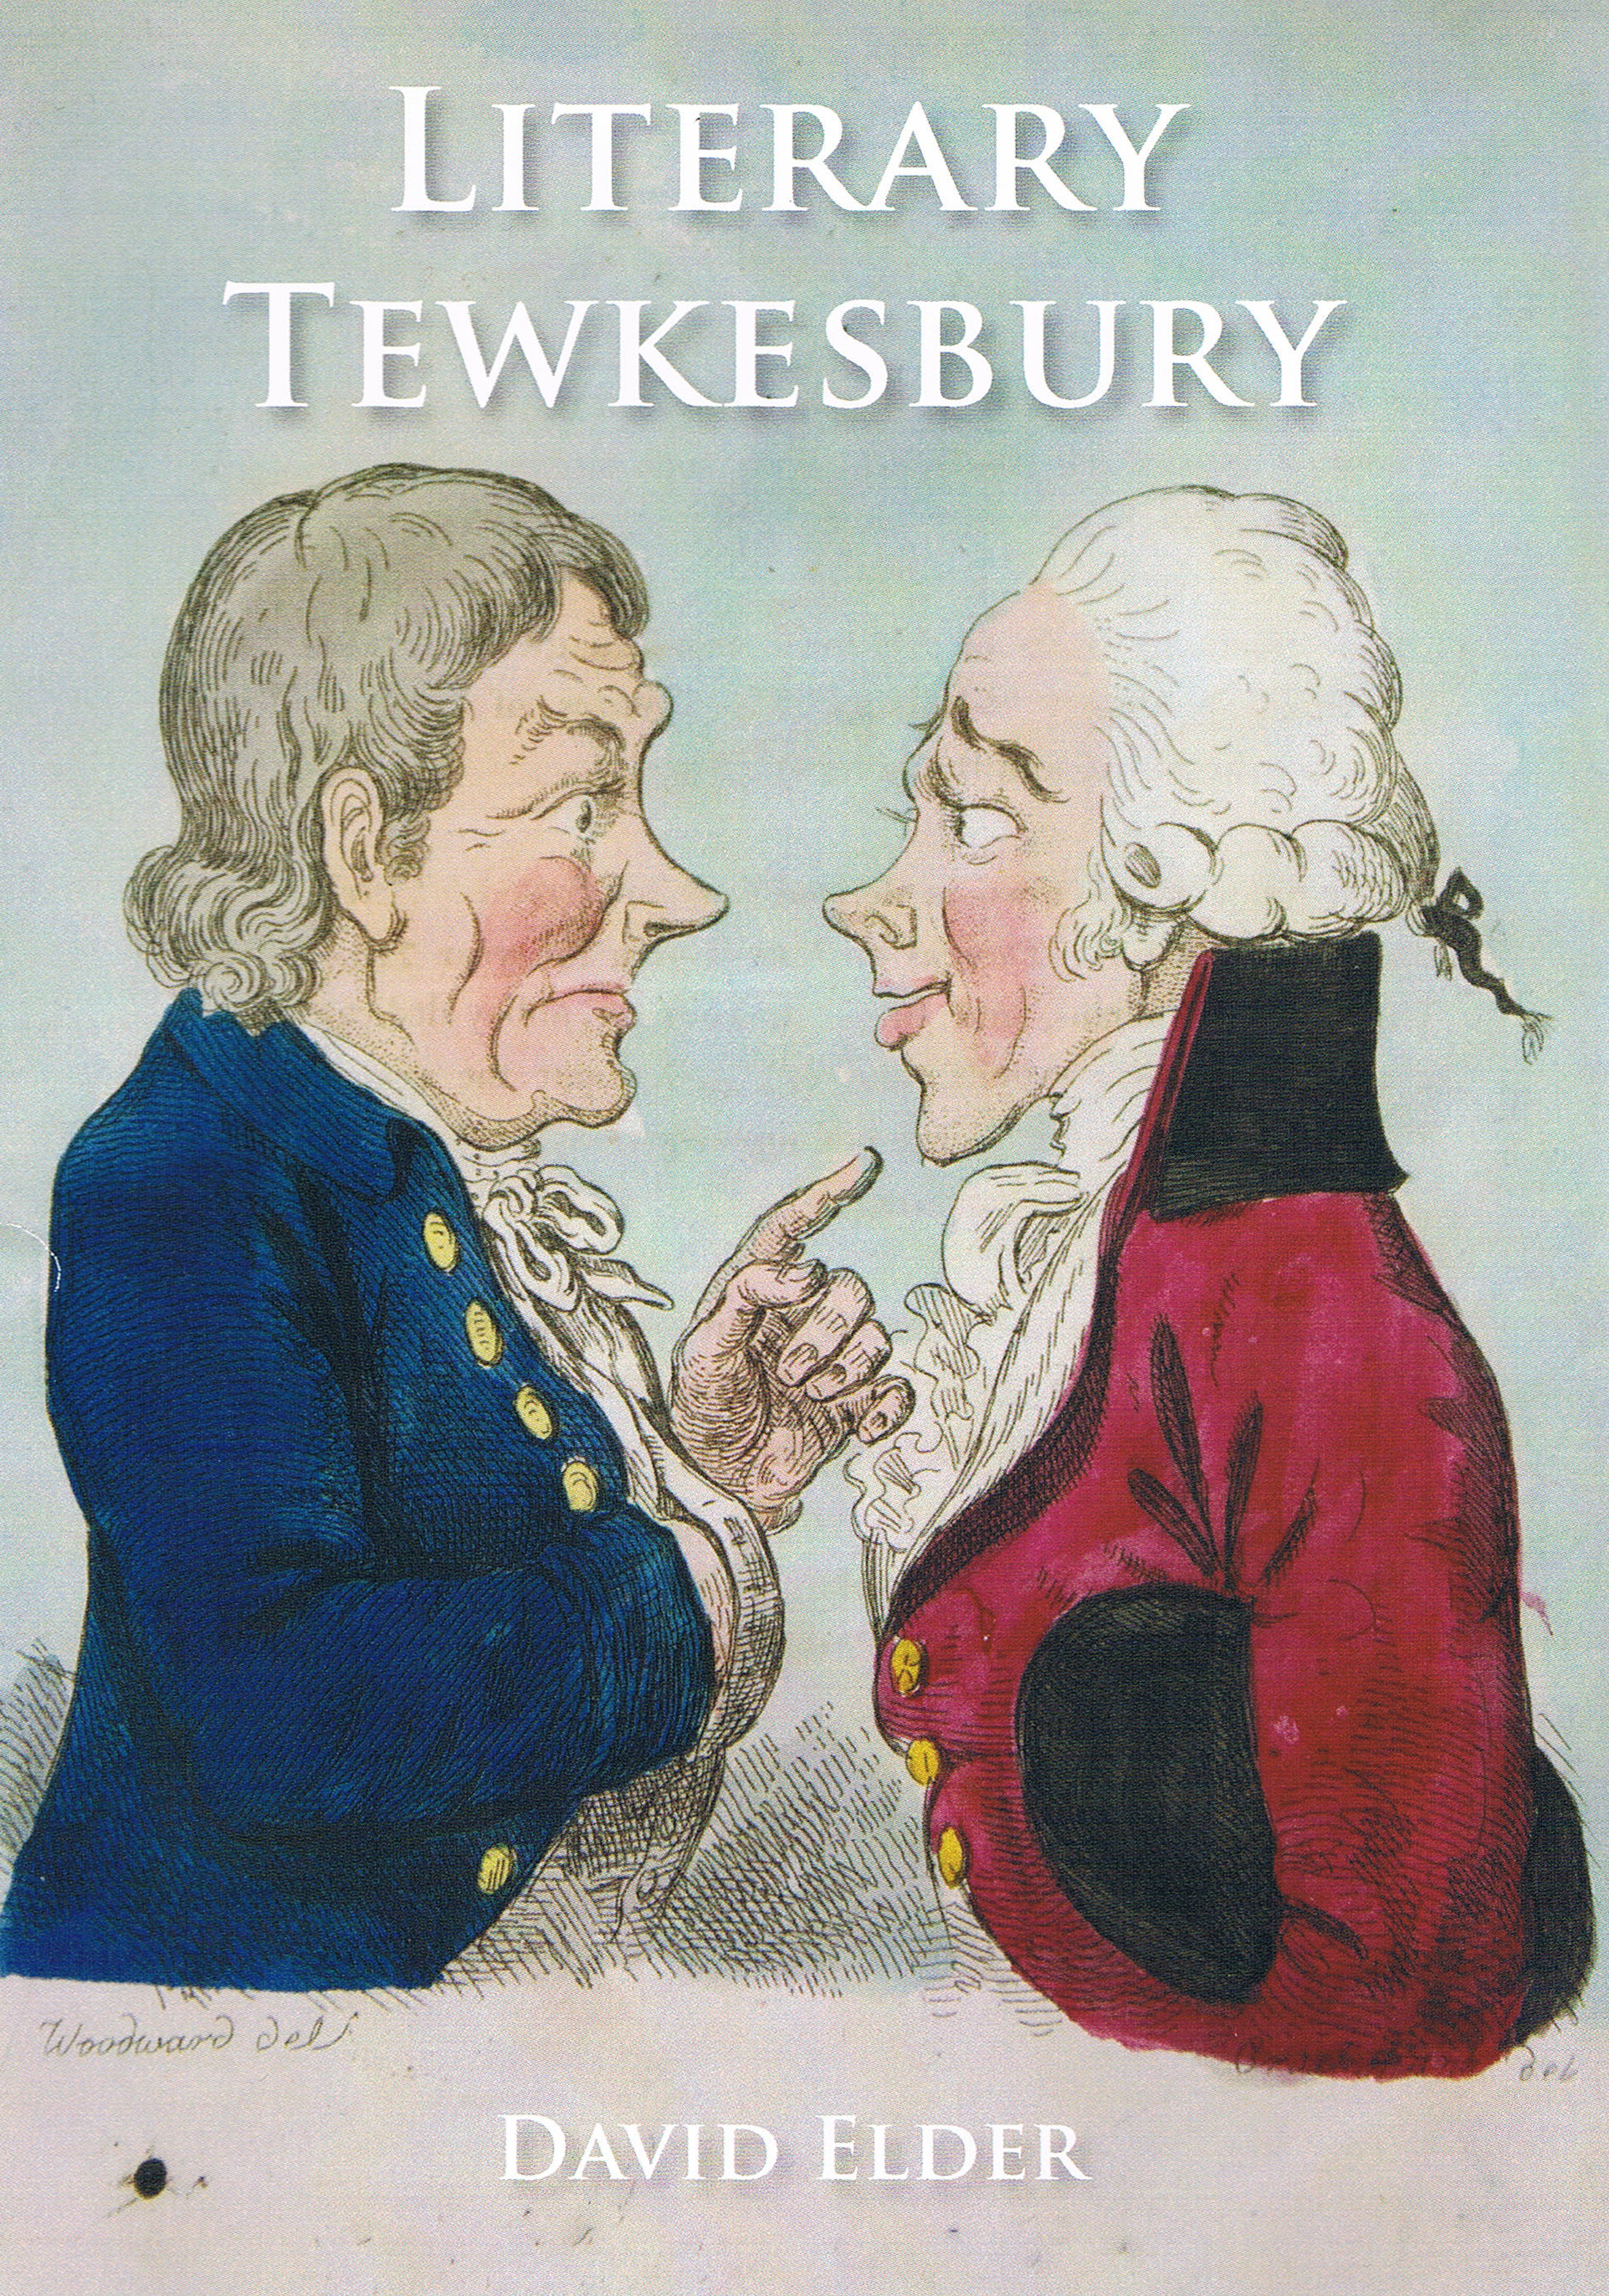 Published in April 2016 by  Tewkesbury Historical Society  as a limited edition. Also available as an e-book.  'Literary Tewkesbury' presents a fascinating collection of quotations, images and commentary that provides a totally new perspective on Tewkesbury's history. Fully illustrated in colour and black and white. Complete with index and a literary walk around the town.